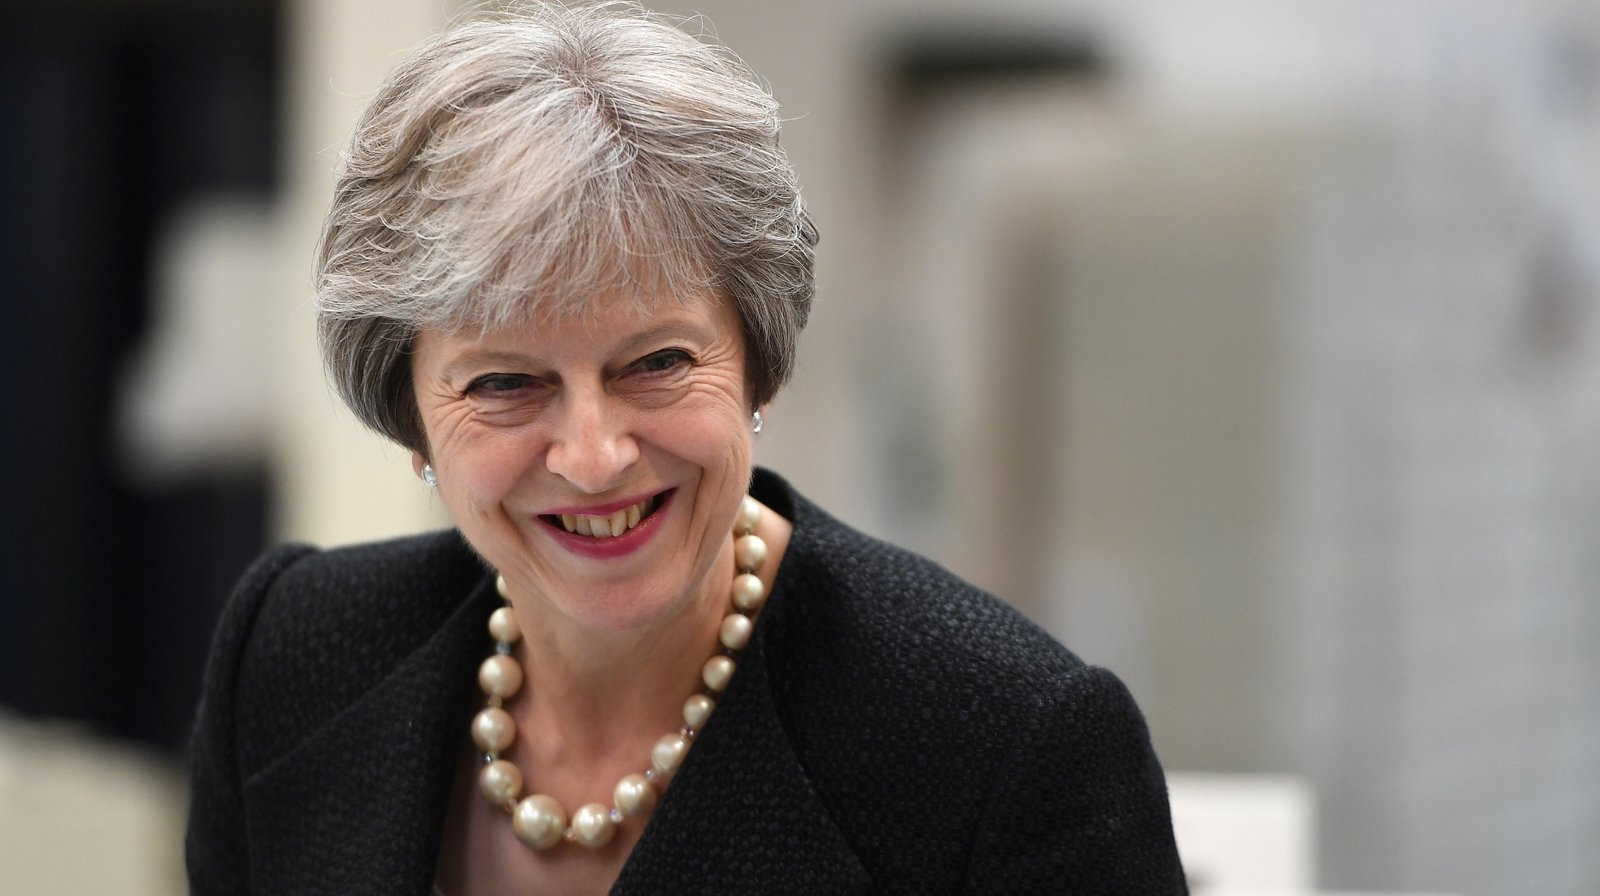 May 'standing over' Chequers deal despite criticism